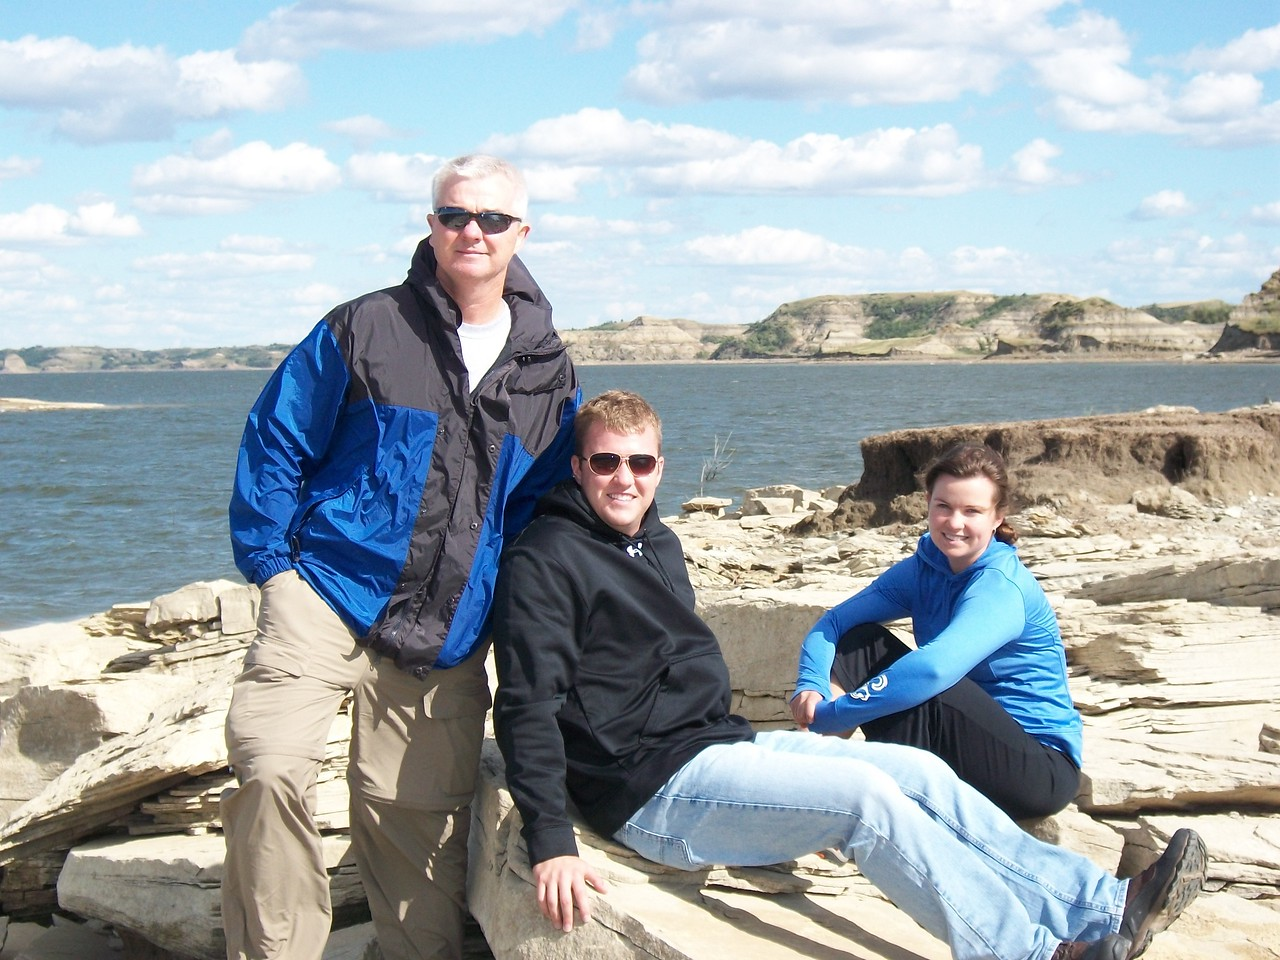 Images sent from Rowena for the Calendar 23 great shots.  These look like some good ones.  The family looks like they are having fun.